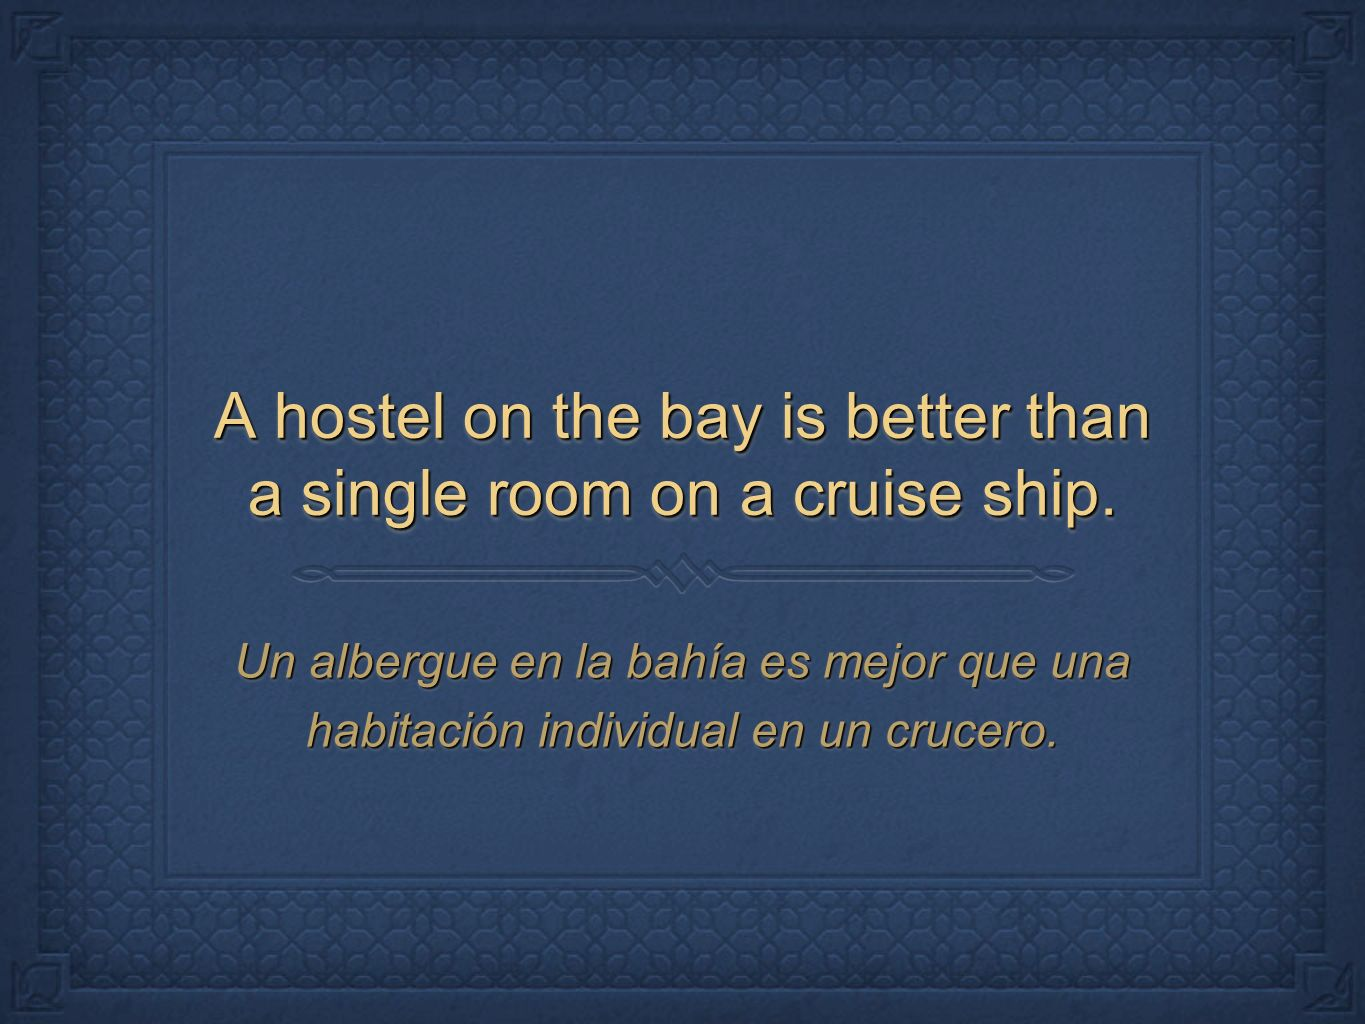 A hostel on the bay is better than a single room on a cruise ship.